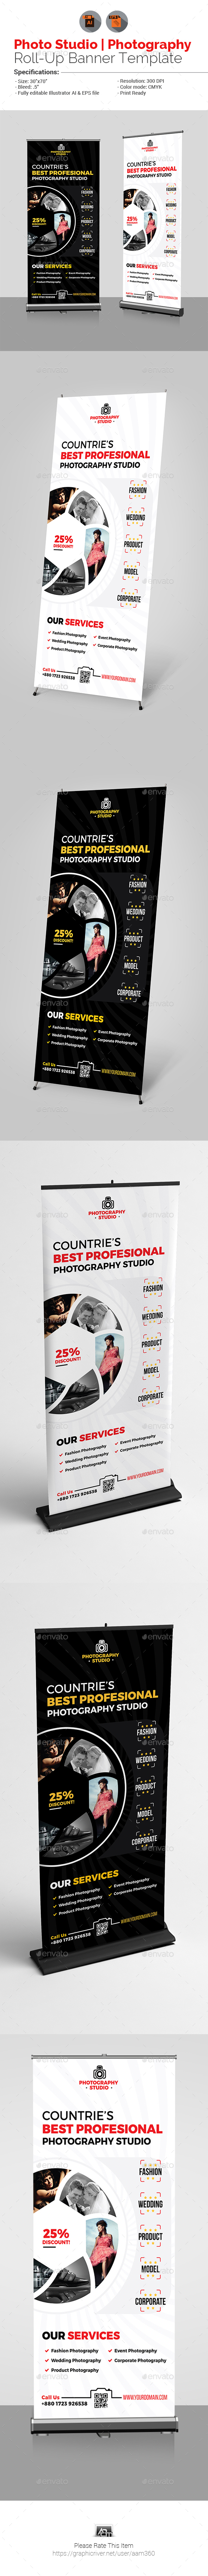 Photo Studio Roll-Up Banner V2 - Signage Print Templates